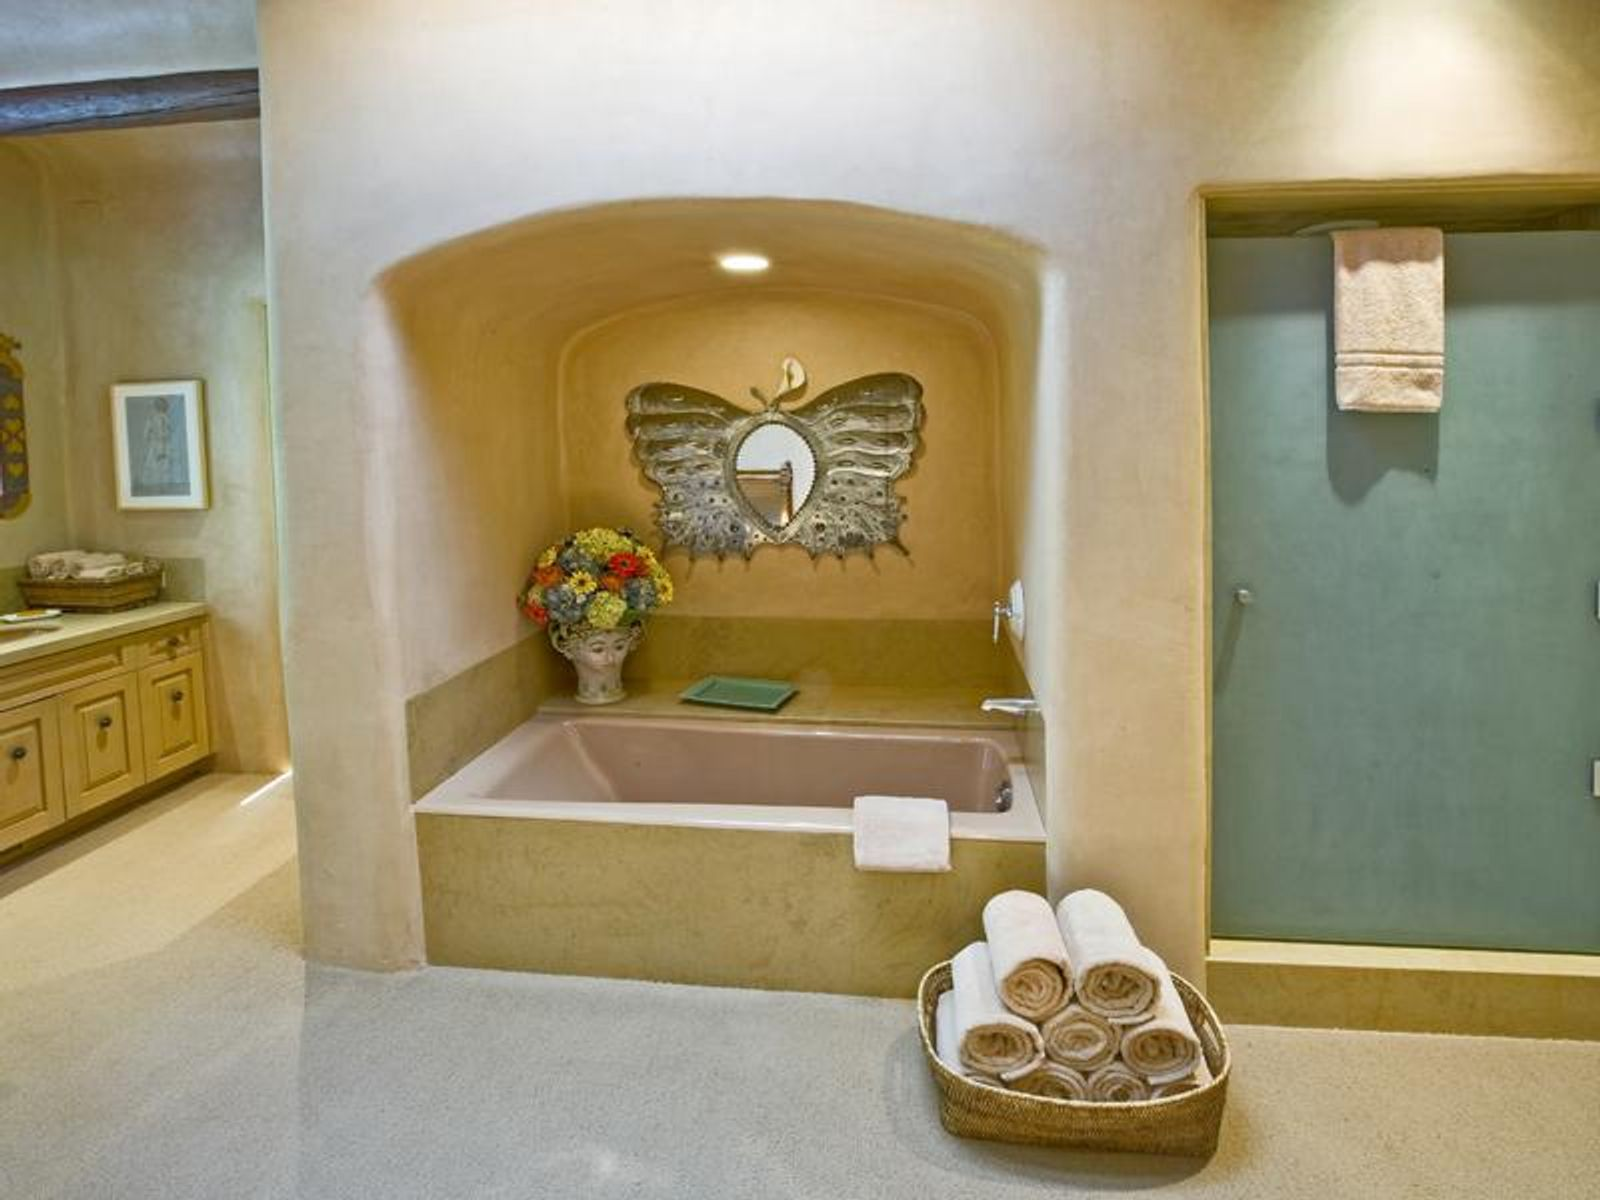 A sunken tub, a vanity with abundant cabinets ...